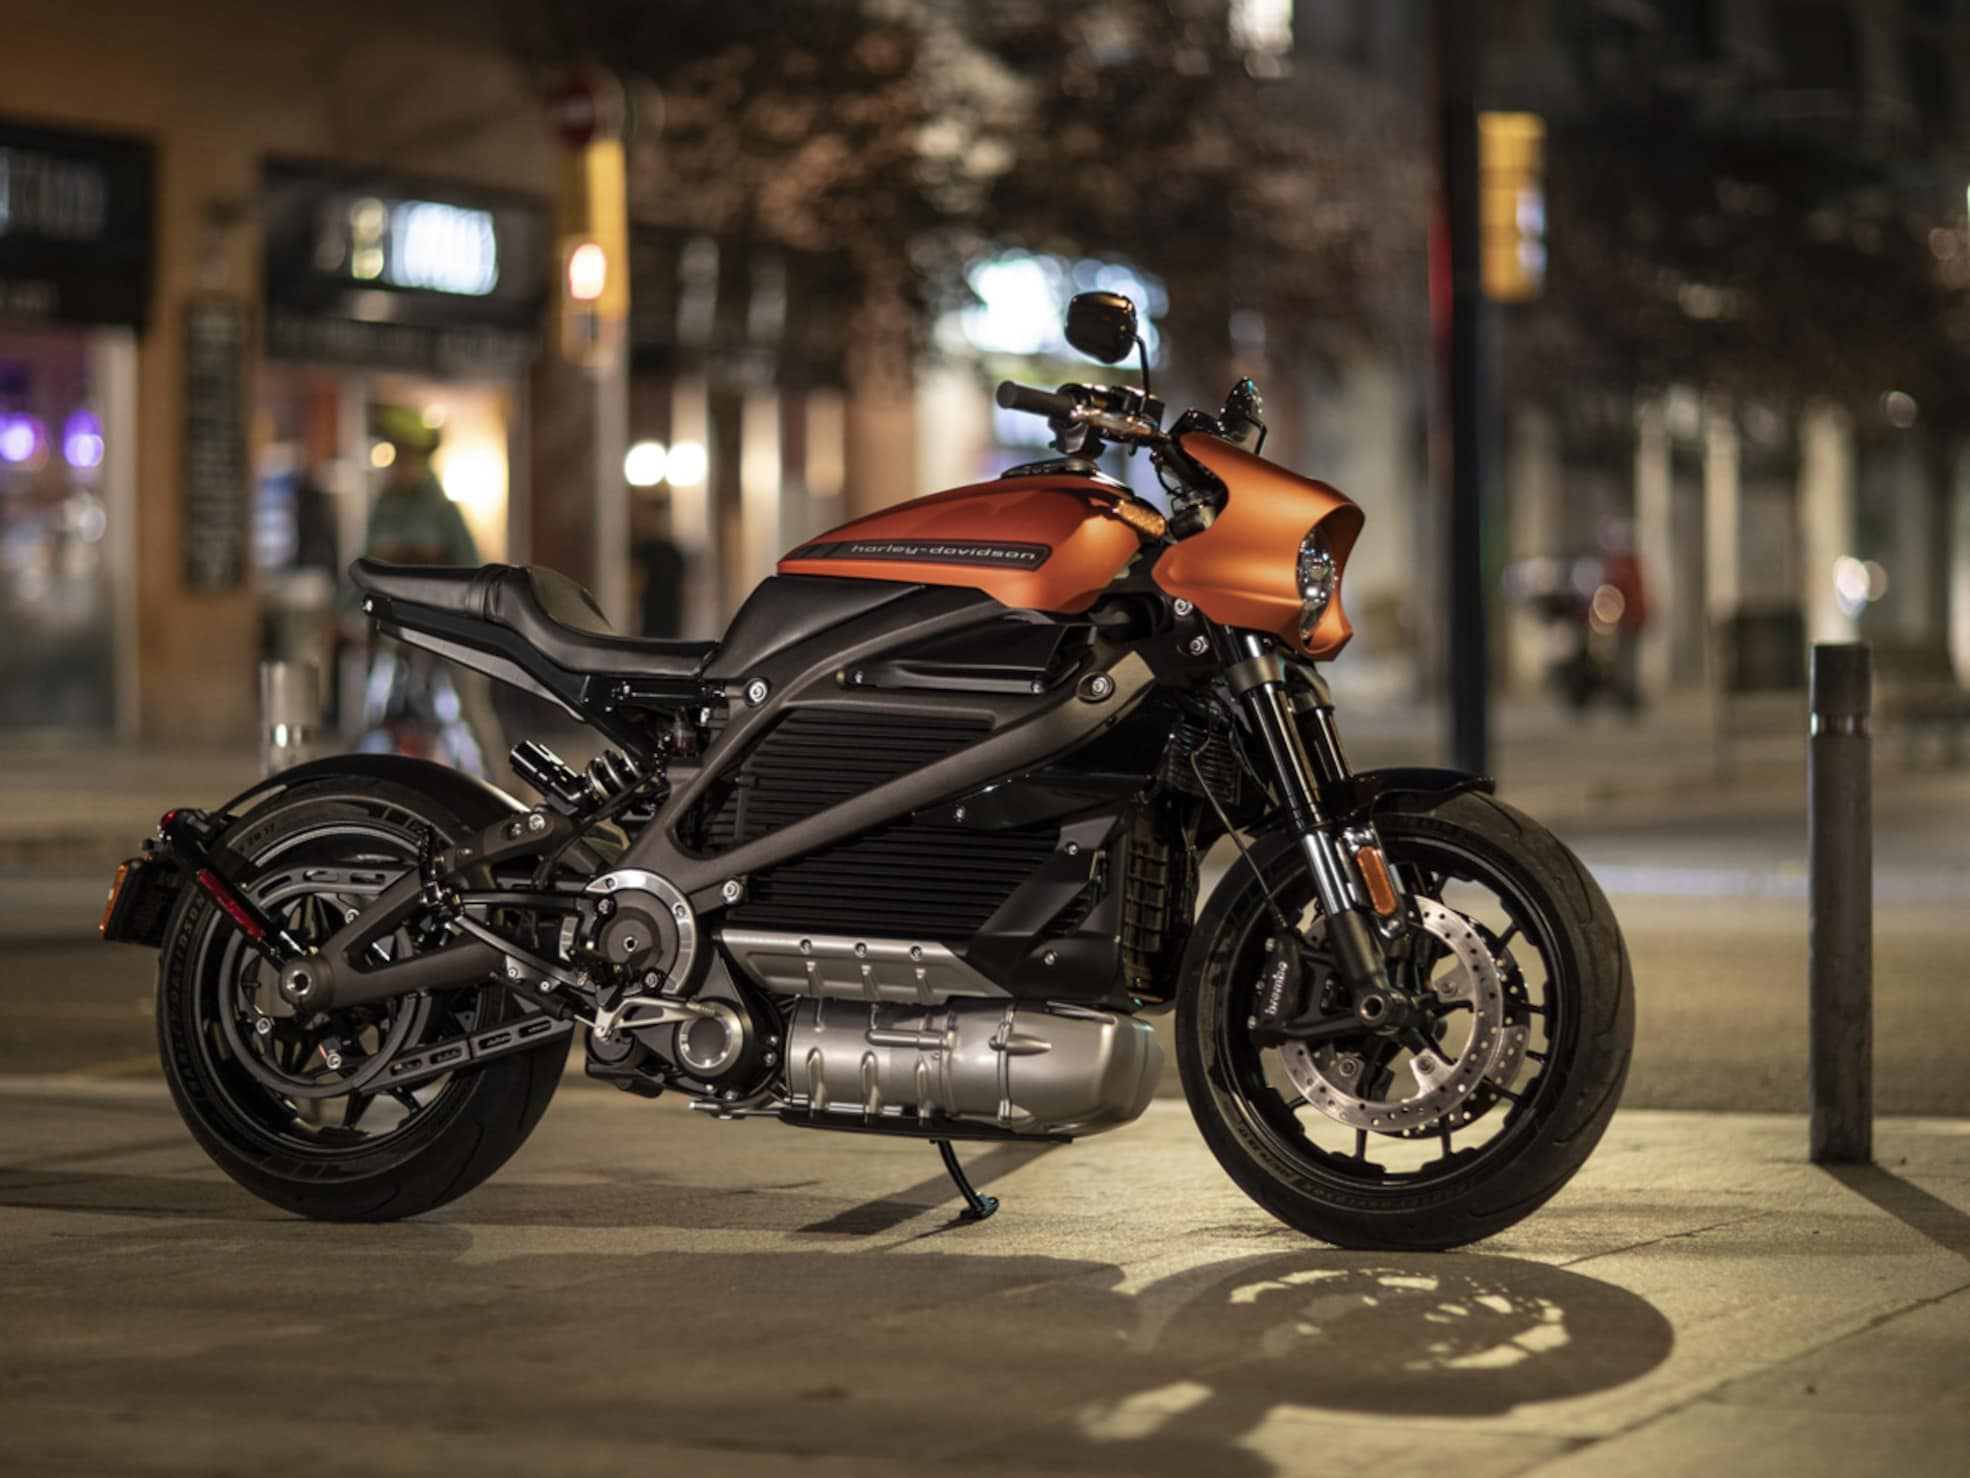 Harley-Davidson LiveWire Electric motorcycle at night on street